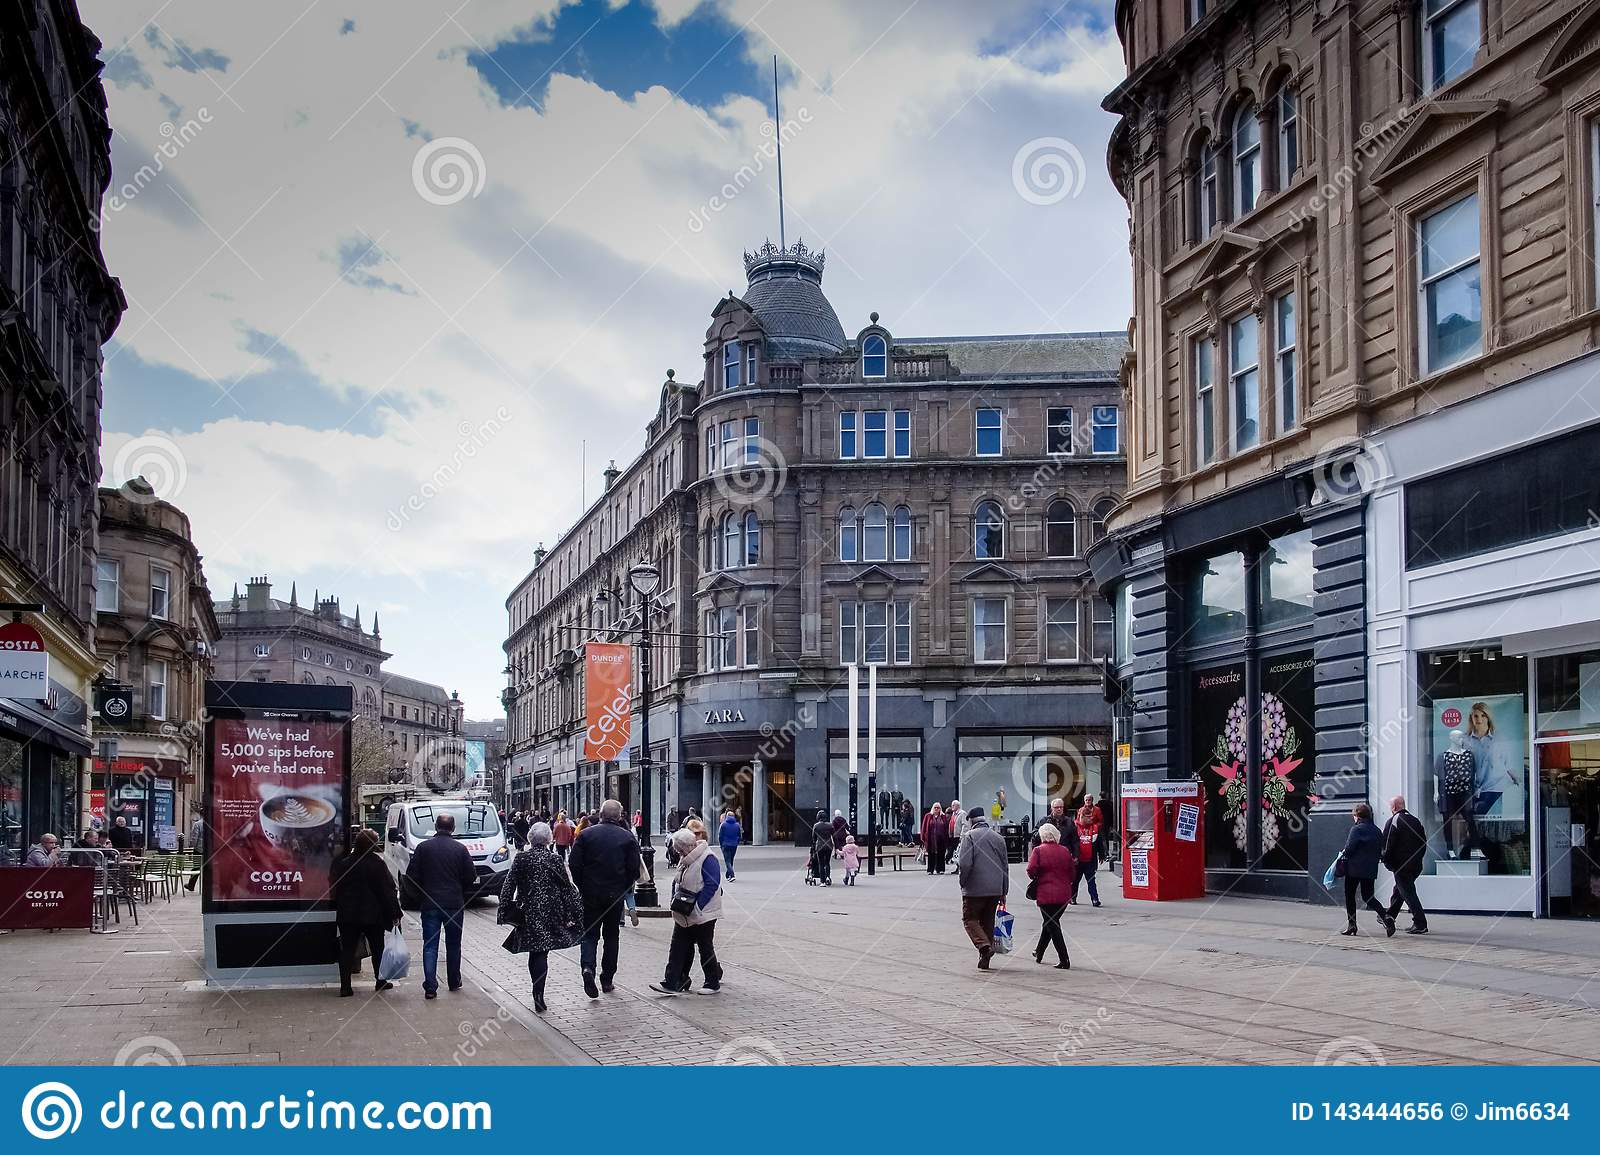 Dundee City Centre Looking Towards The Square From ...